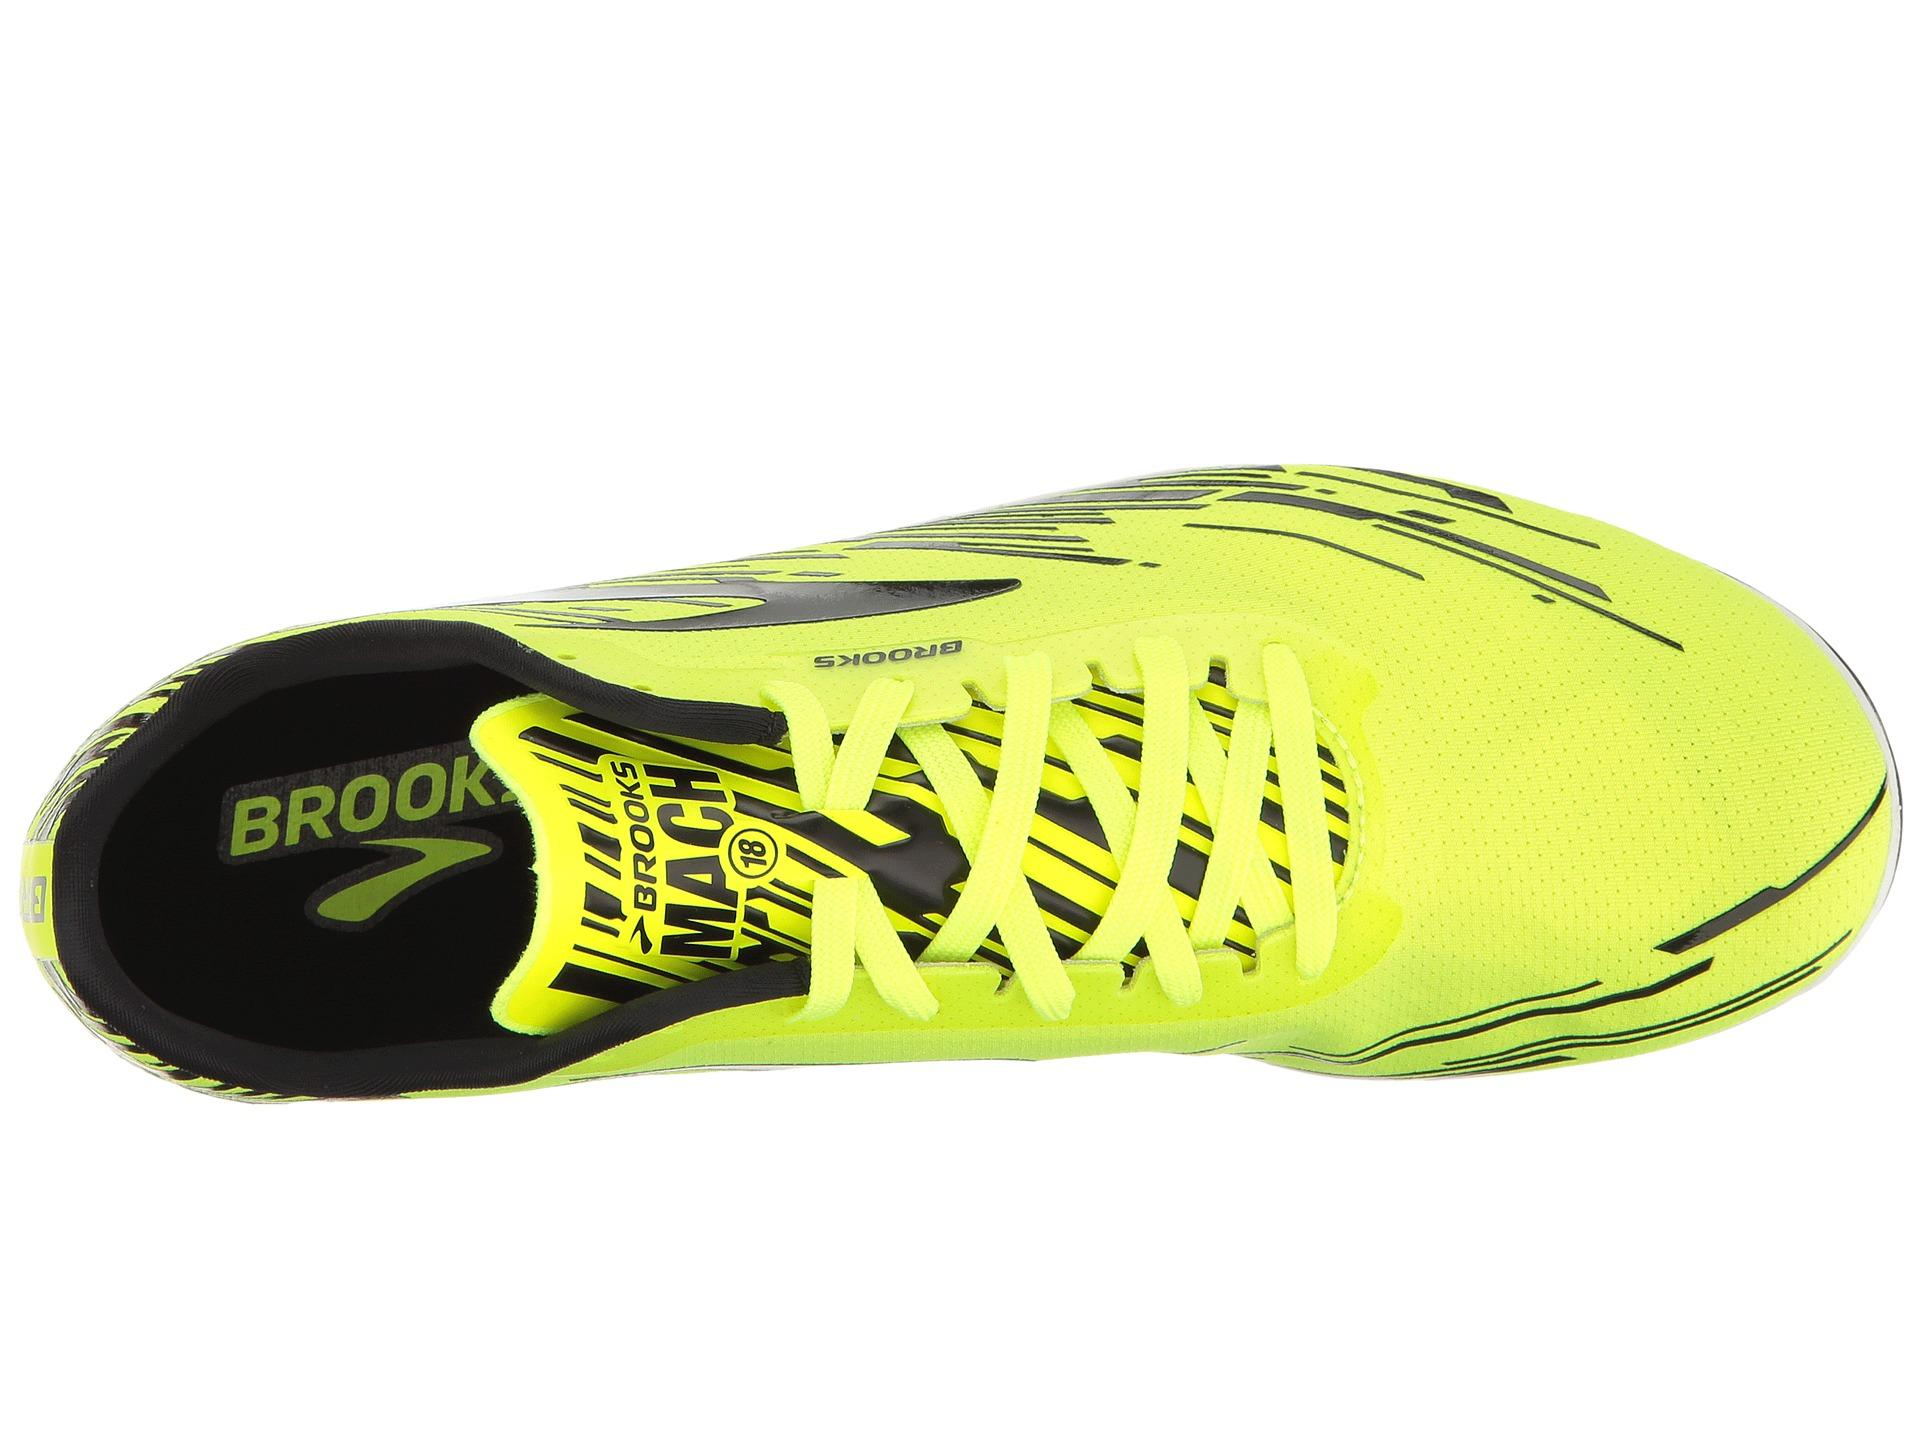 fbacf1cded3 Lyst - Brooks Mach 18 Spikeless for Men